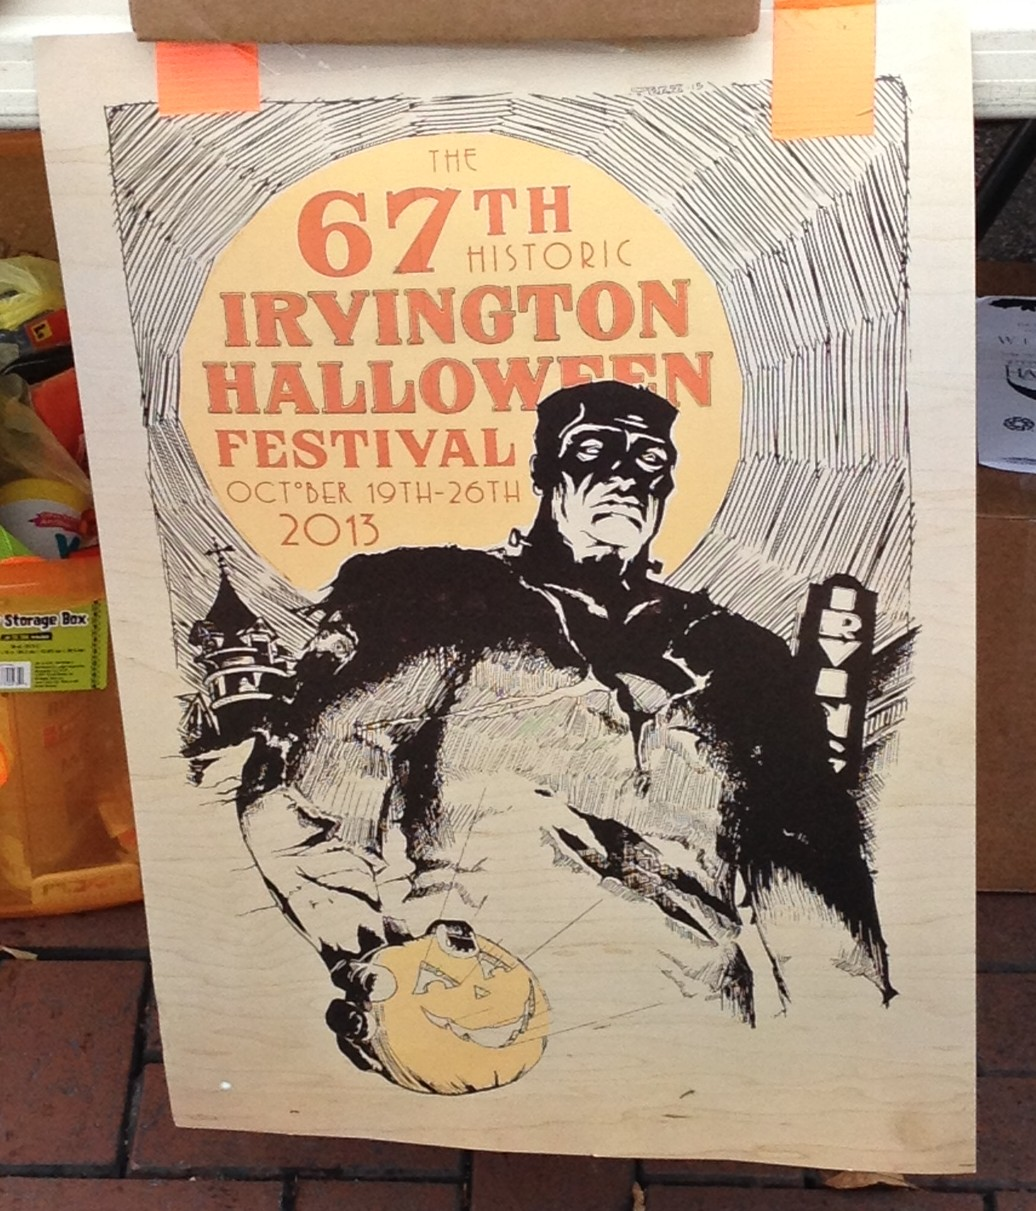 Recap: Irvington Halloween Festival | The Rover and the Recluse